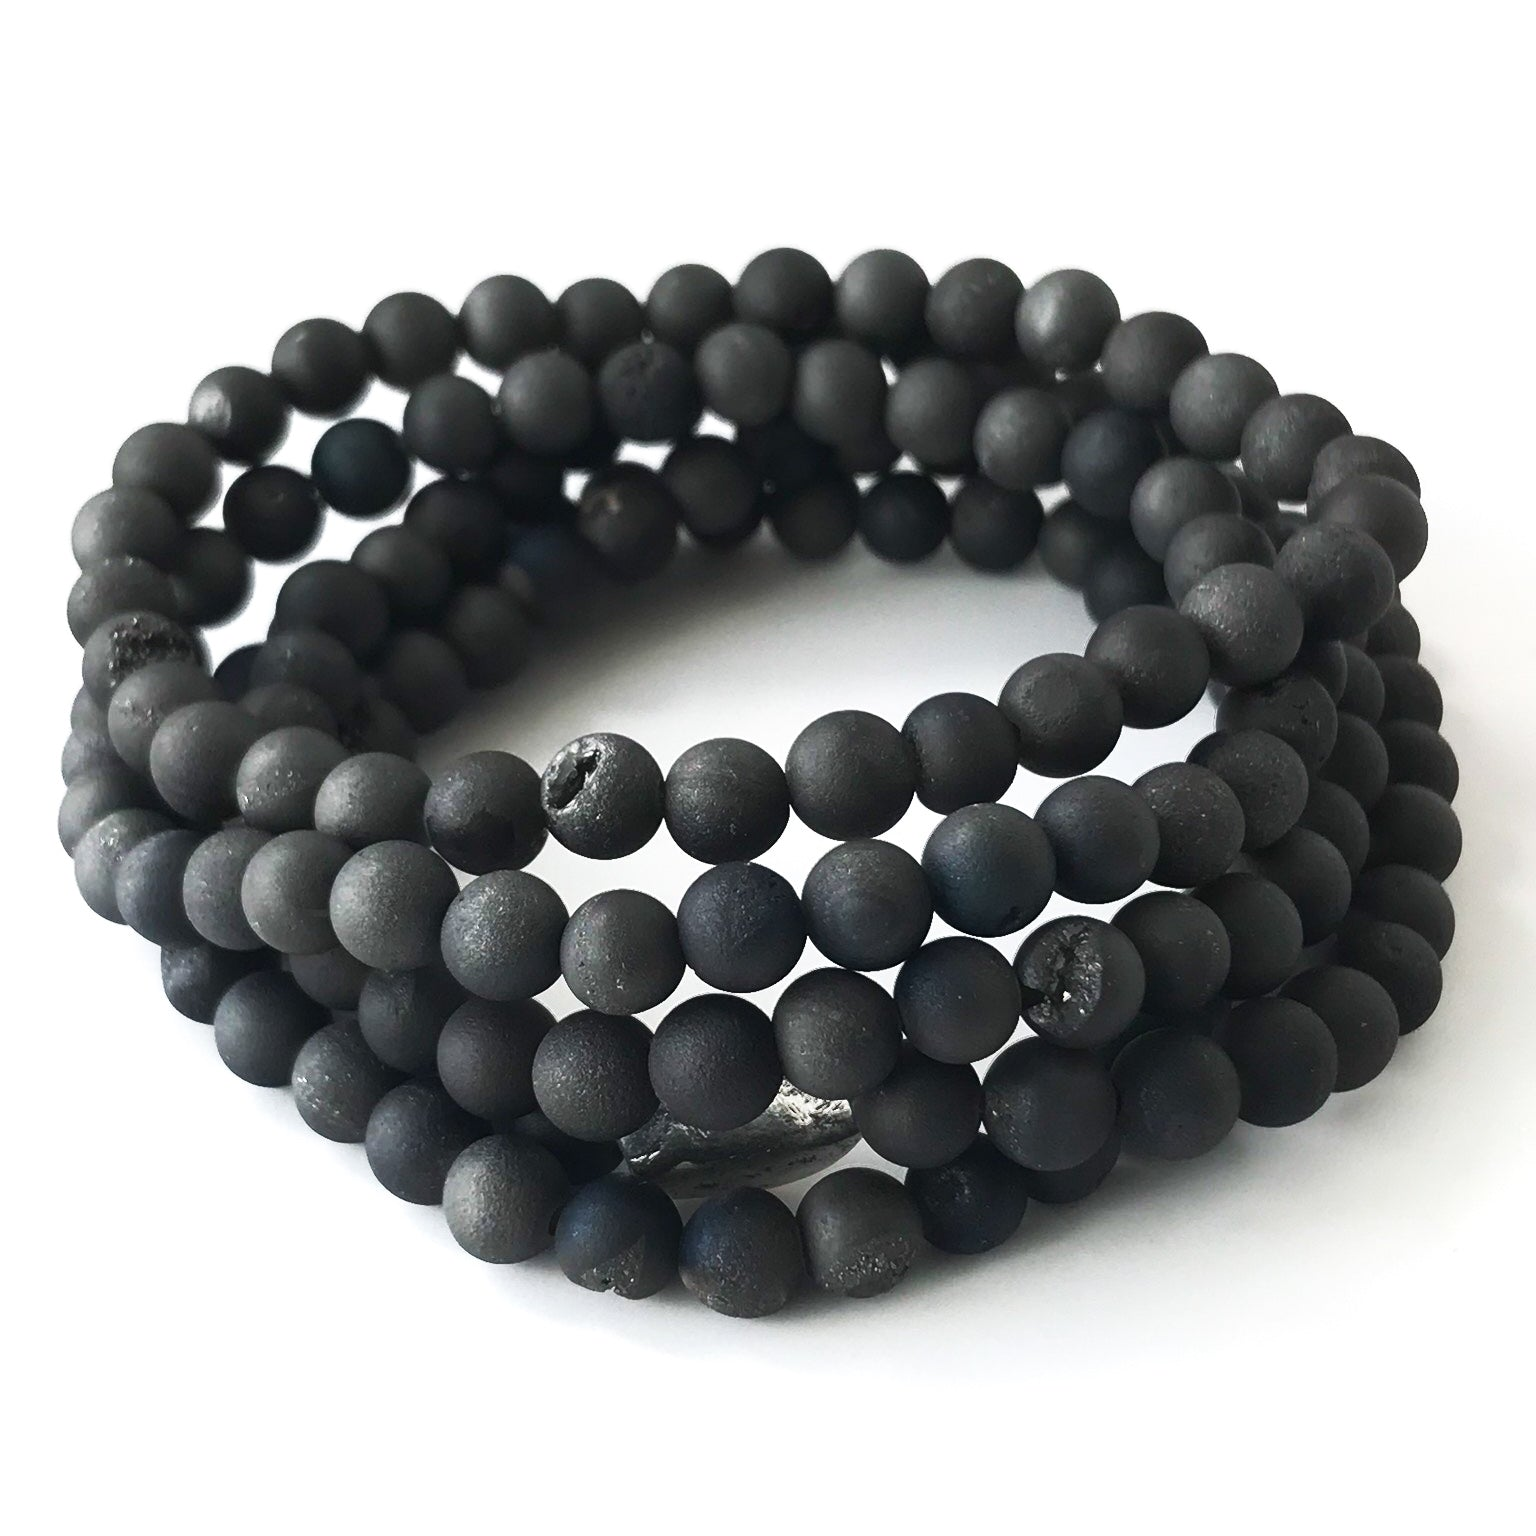 Men's Black Agate Druzy Bracelet